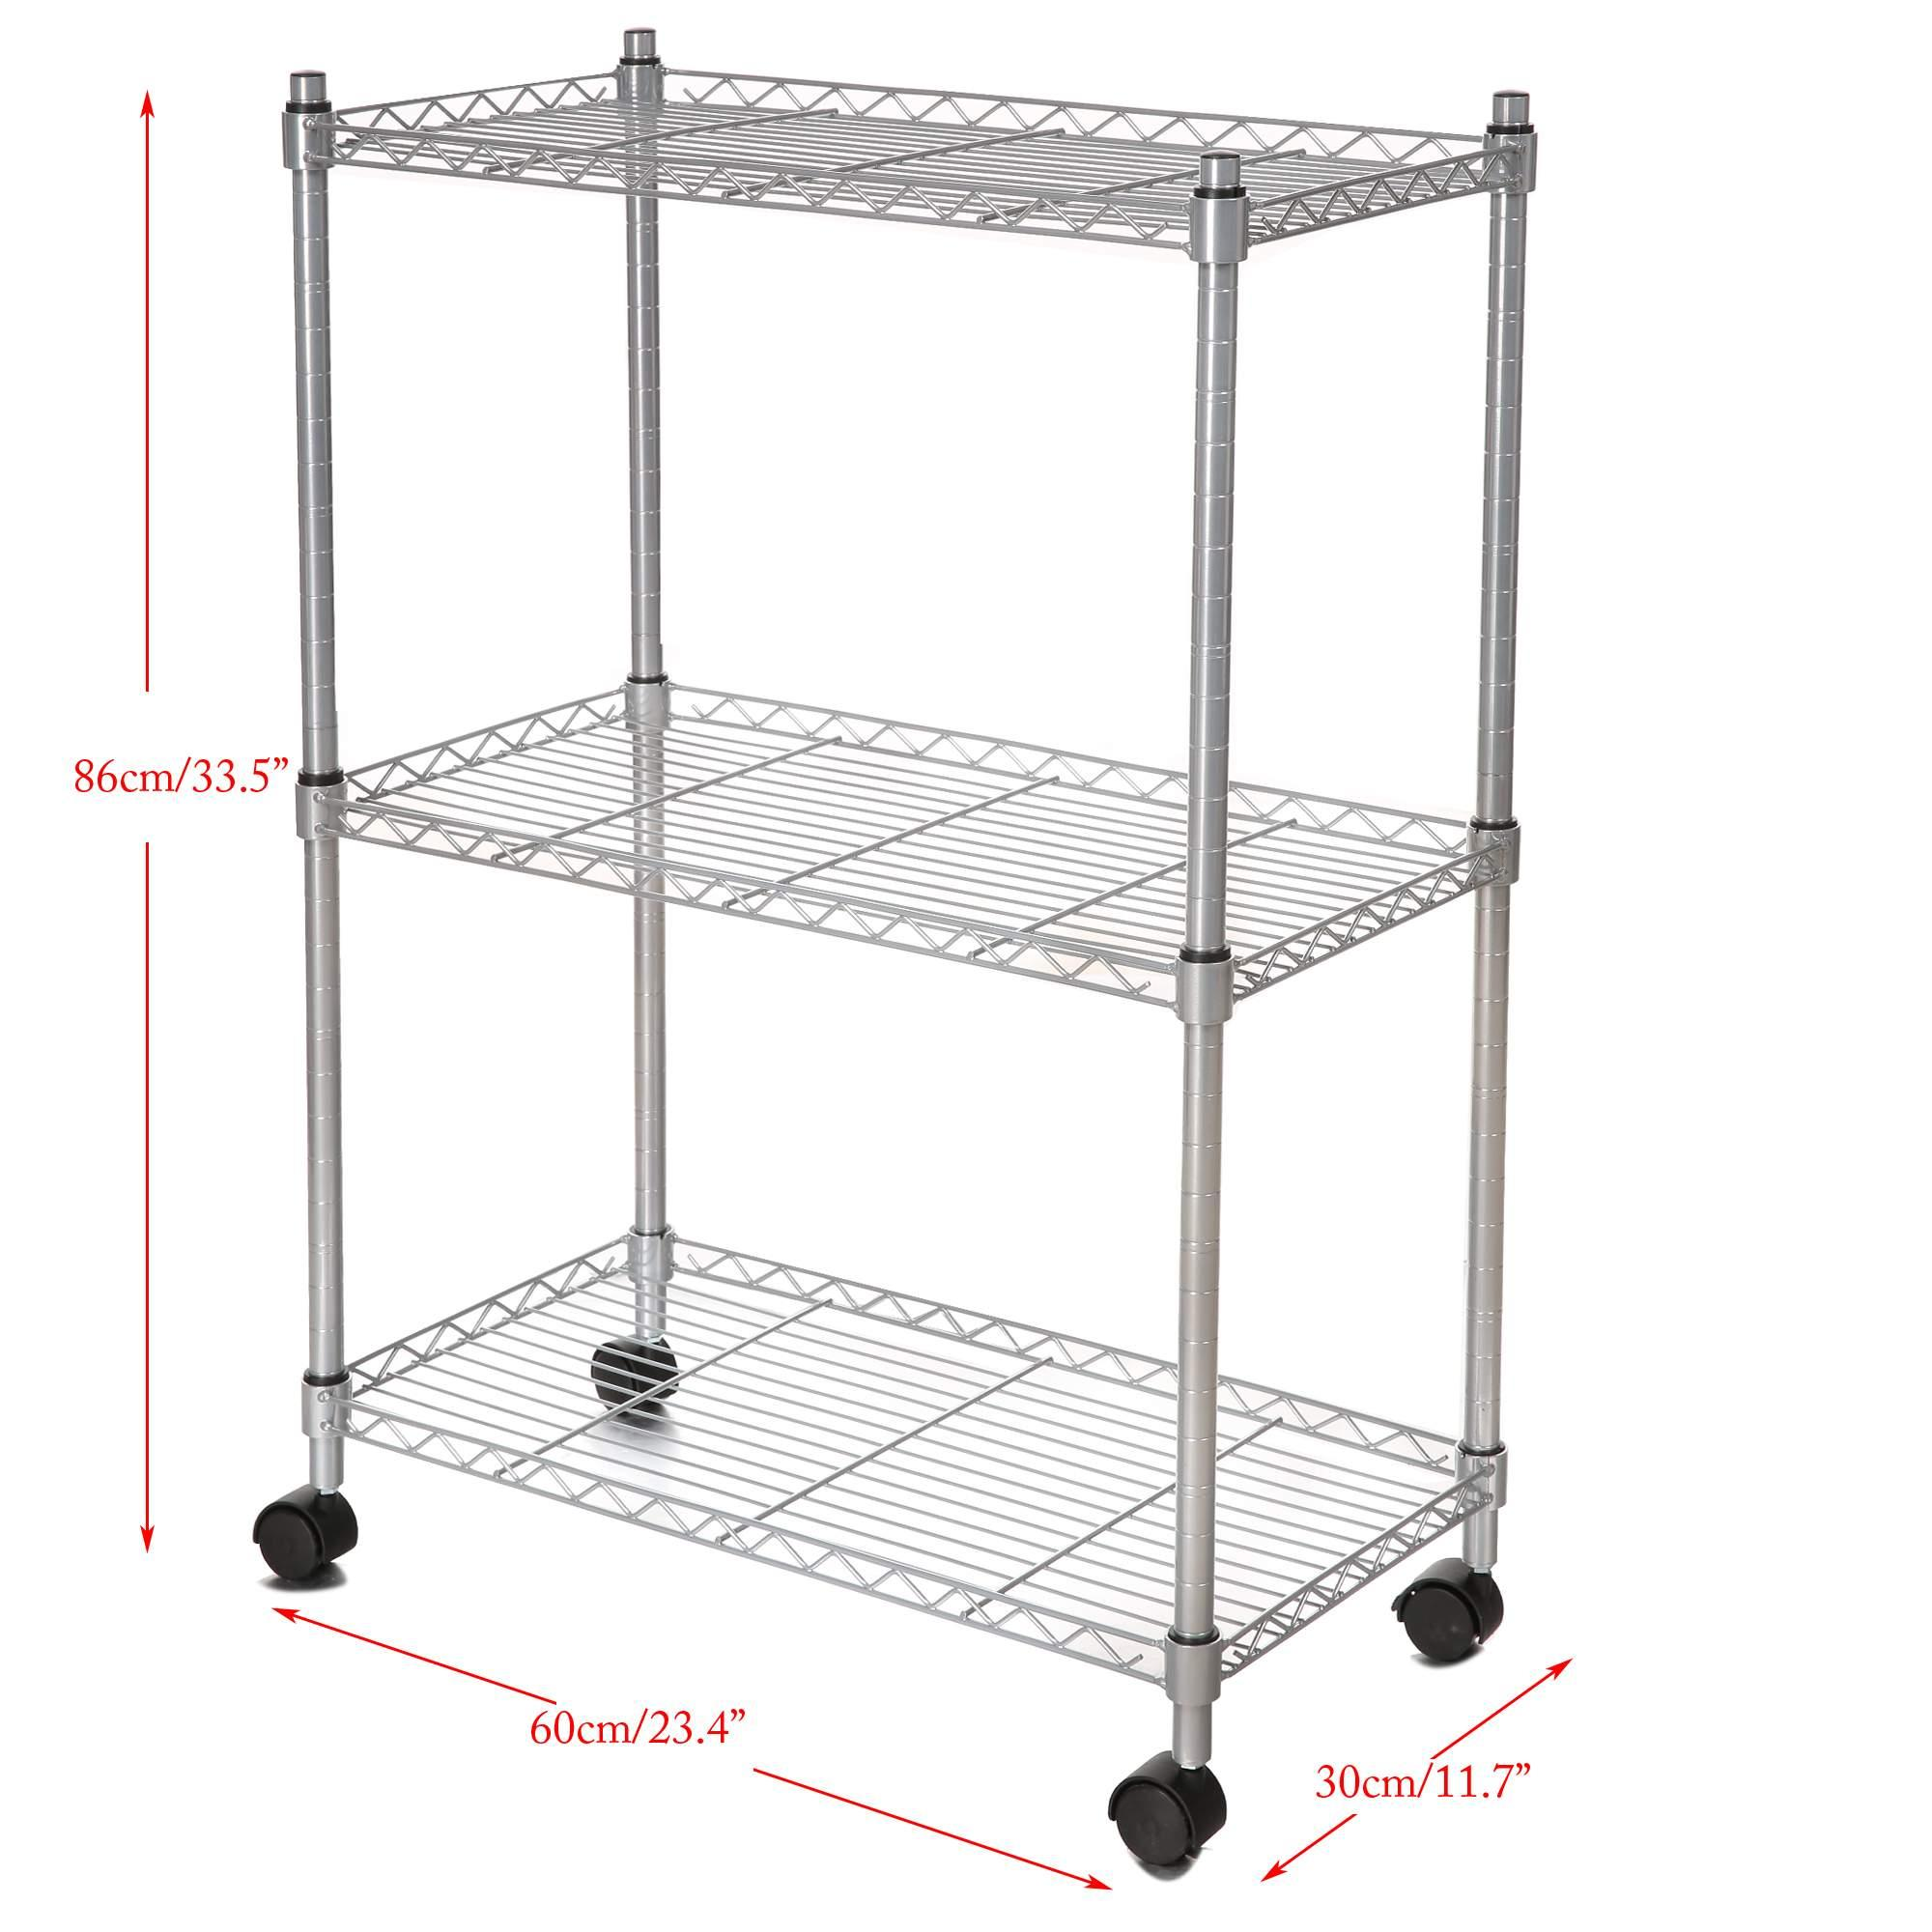 3 Tier Heavy Duty Rolling Metal Kitchen Rack Microwave Oven Stand Storage  Cart CYBST